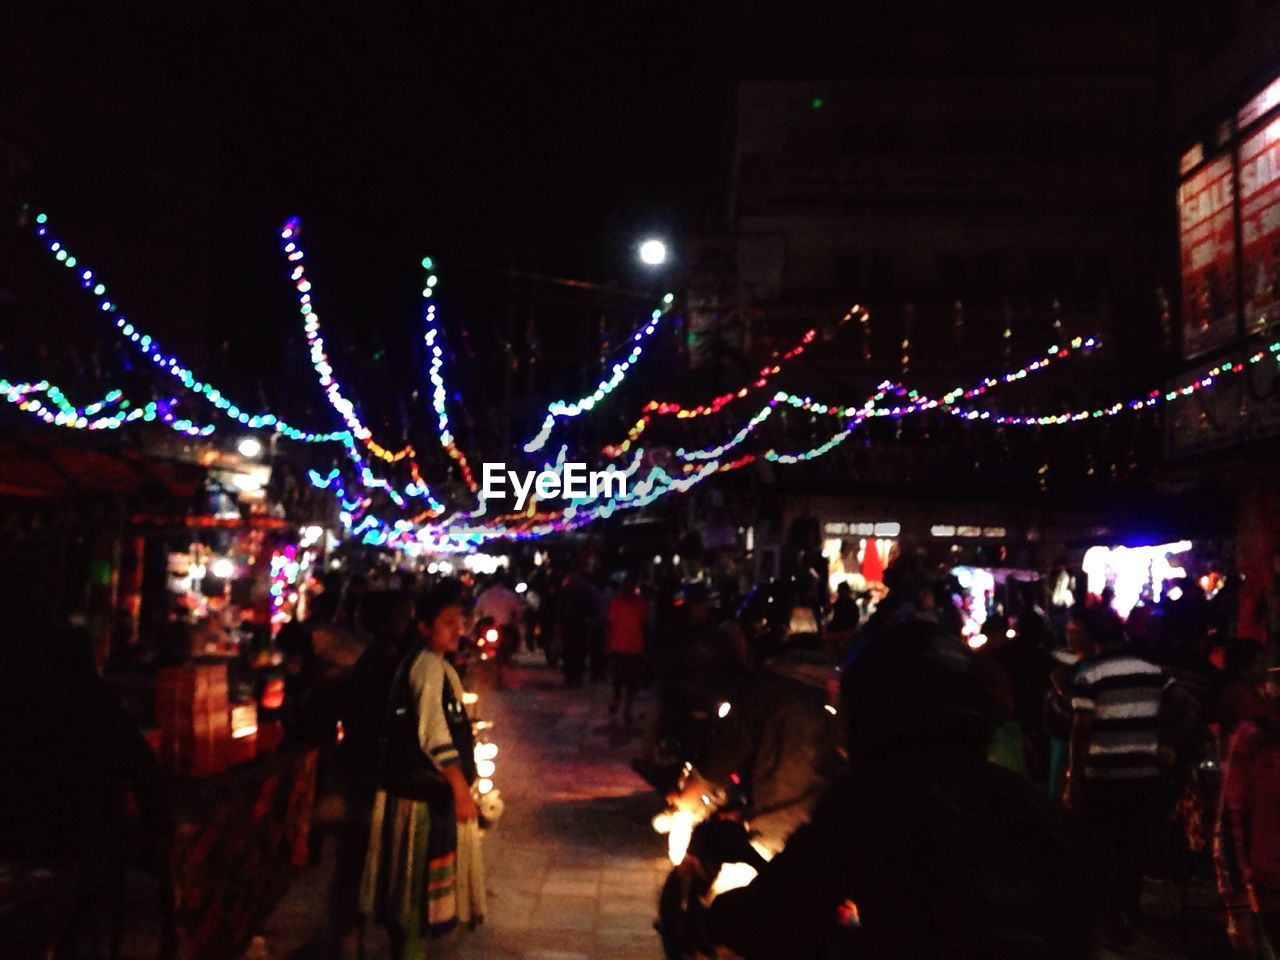 night, illuminated, celebration, built structure, real people, large group of people, architecture, lighting equipment, city, building exterior, lifestyles, leisure activity, city life, christmas, men, women, christmas lights, market, outdoors, crowd, christmas decoration, sky, people